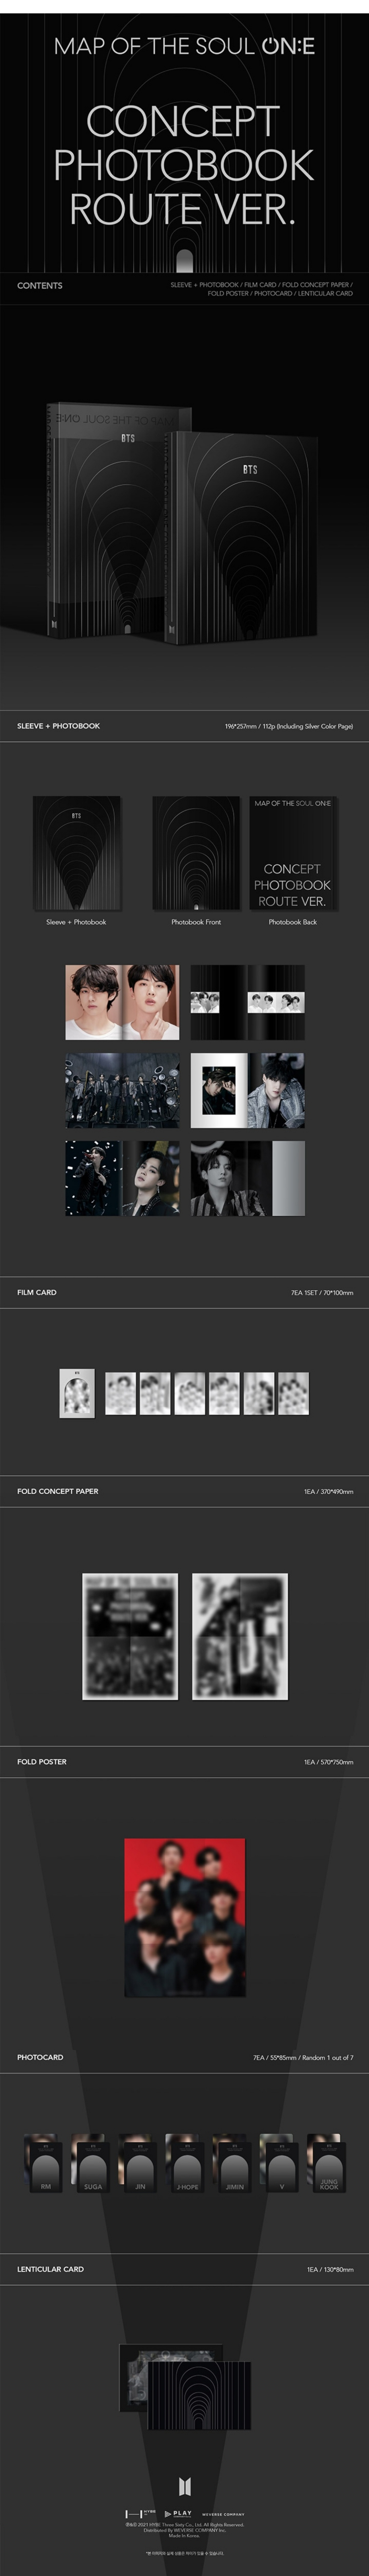 BTS Map of the Soul ON:E Concept Photobook Route Ver